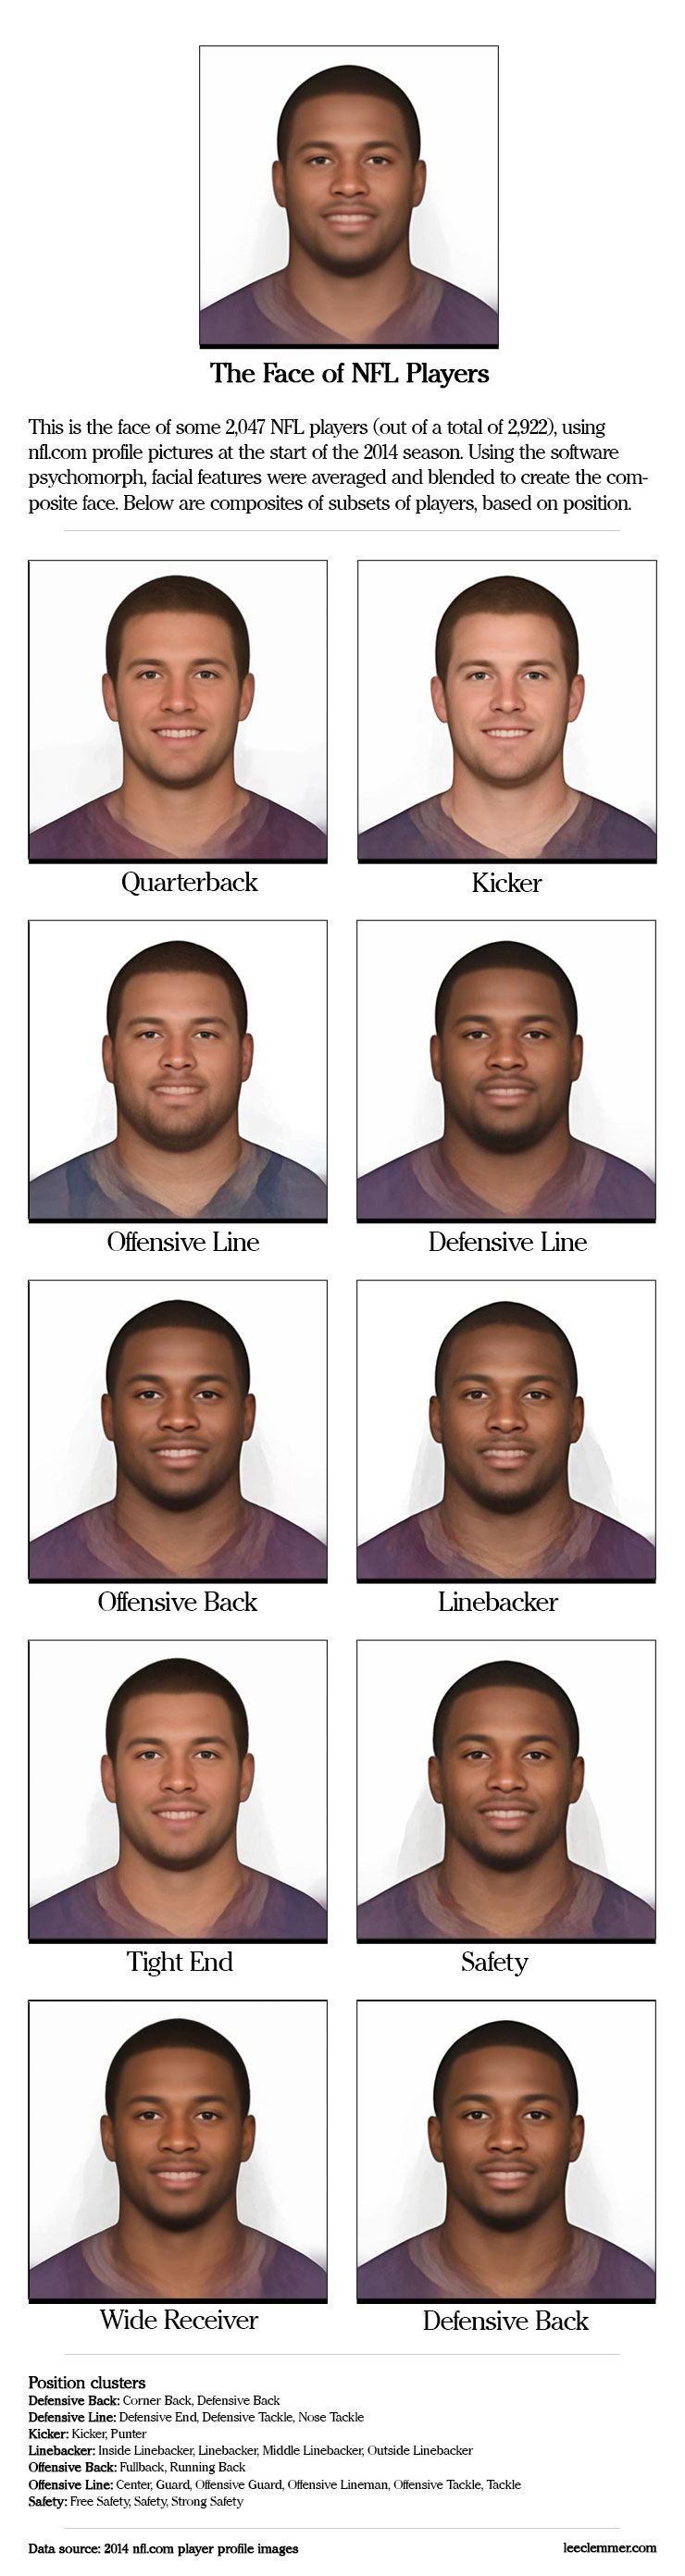 The Face of NFL Players